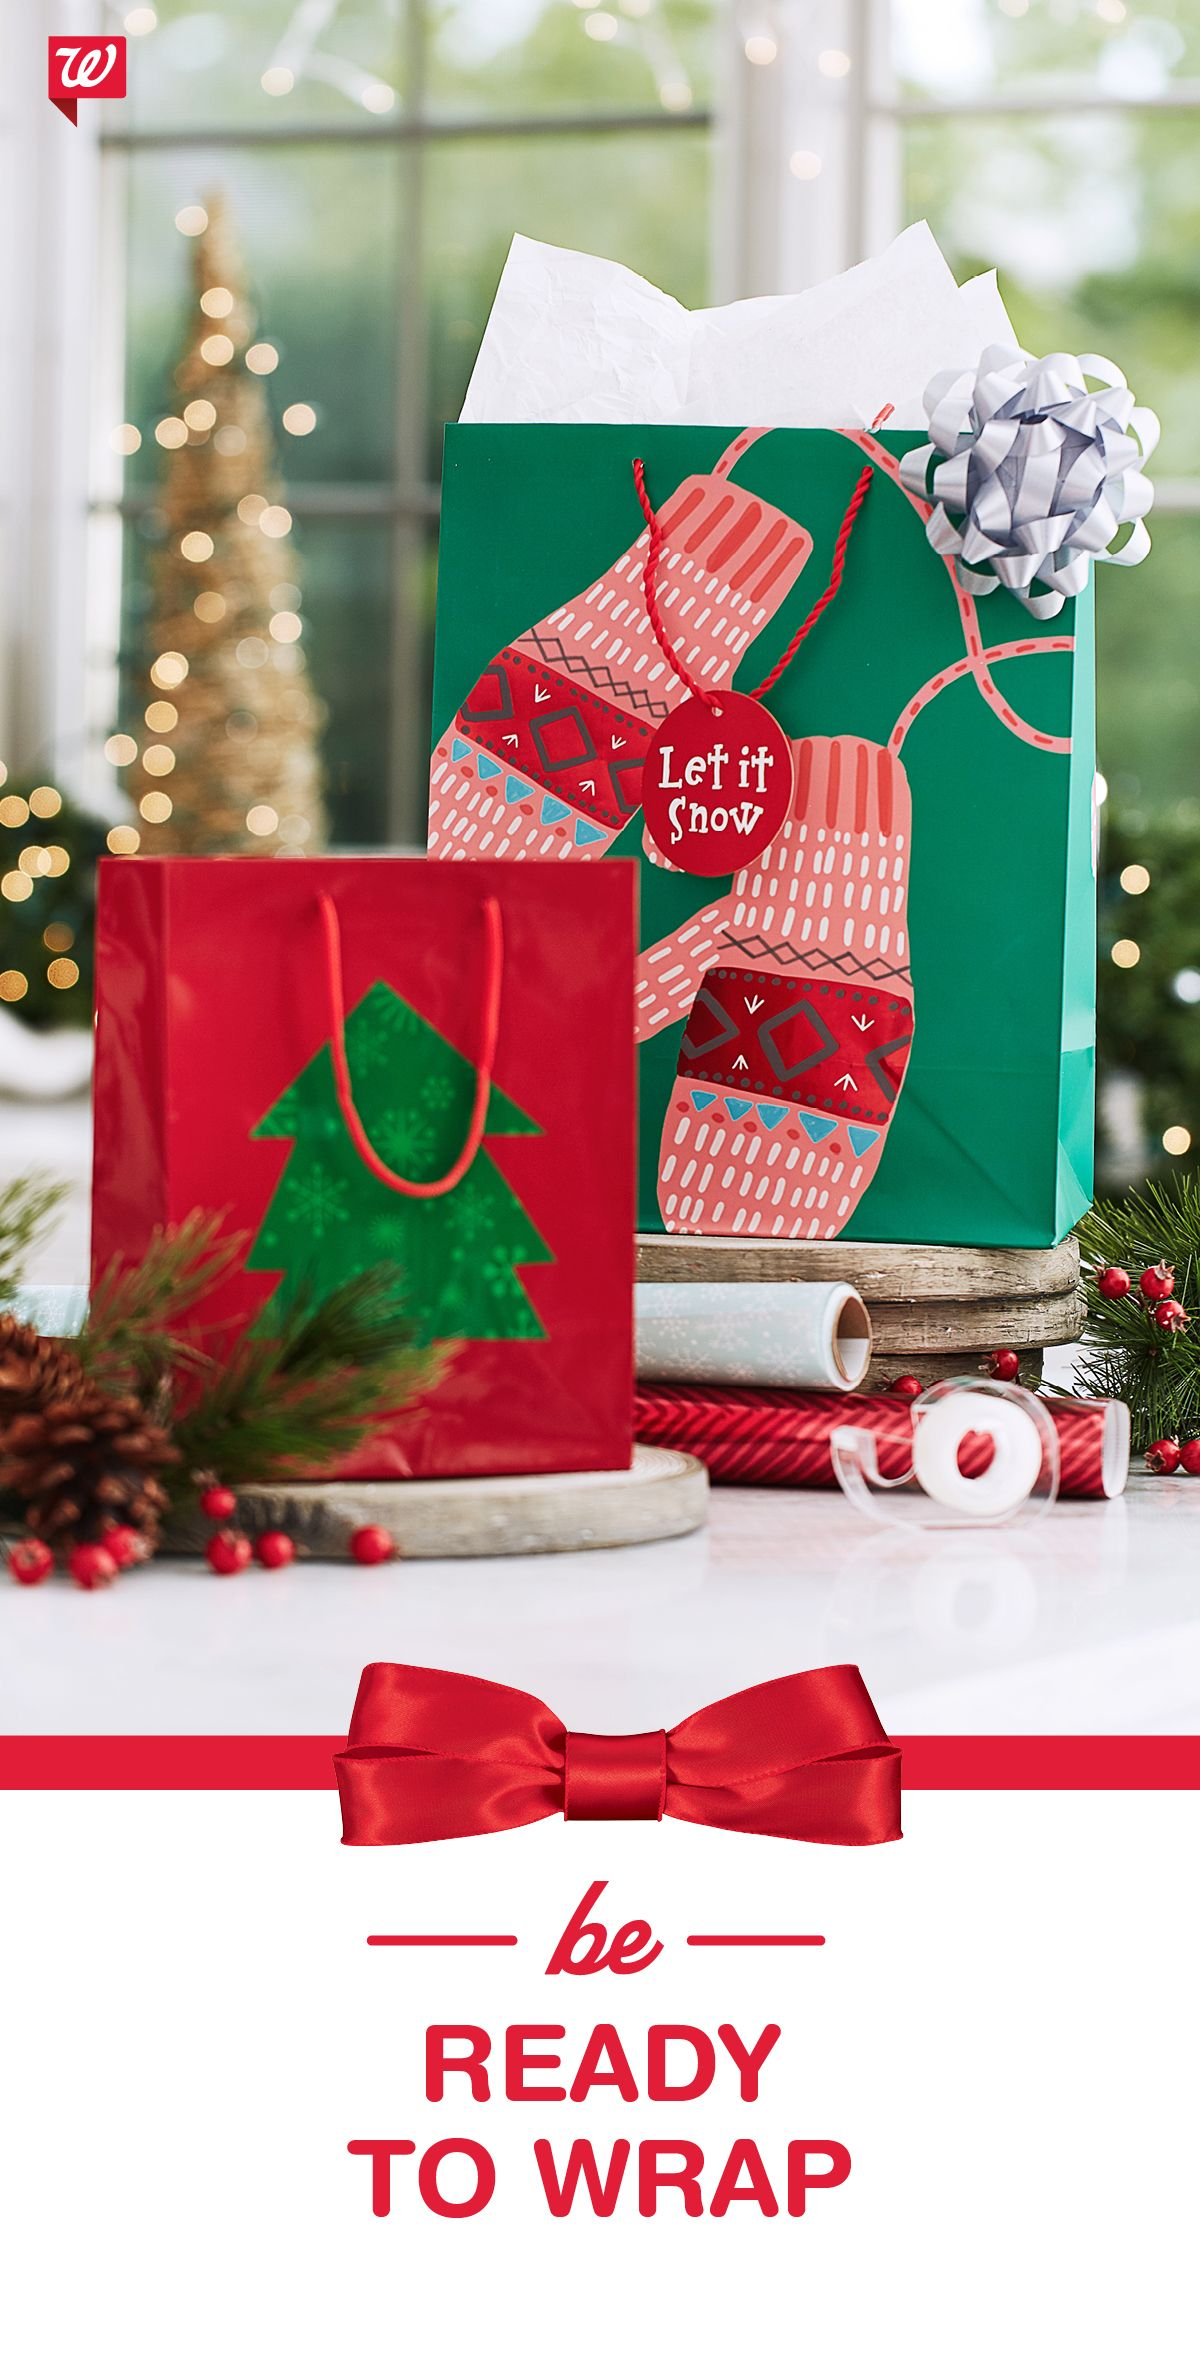 So many gifts, not enough wrap? Stop in for Hallmark wrap, gift bags ...